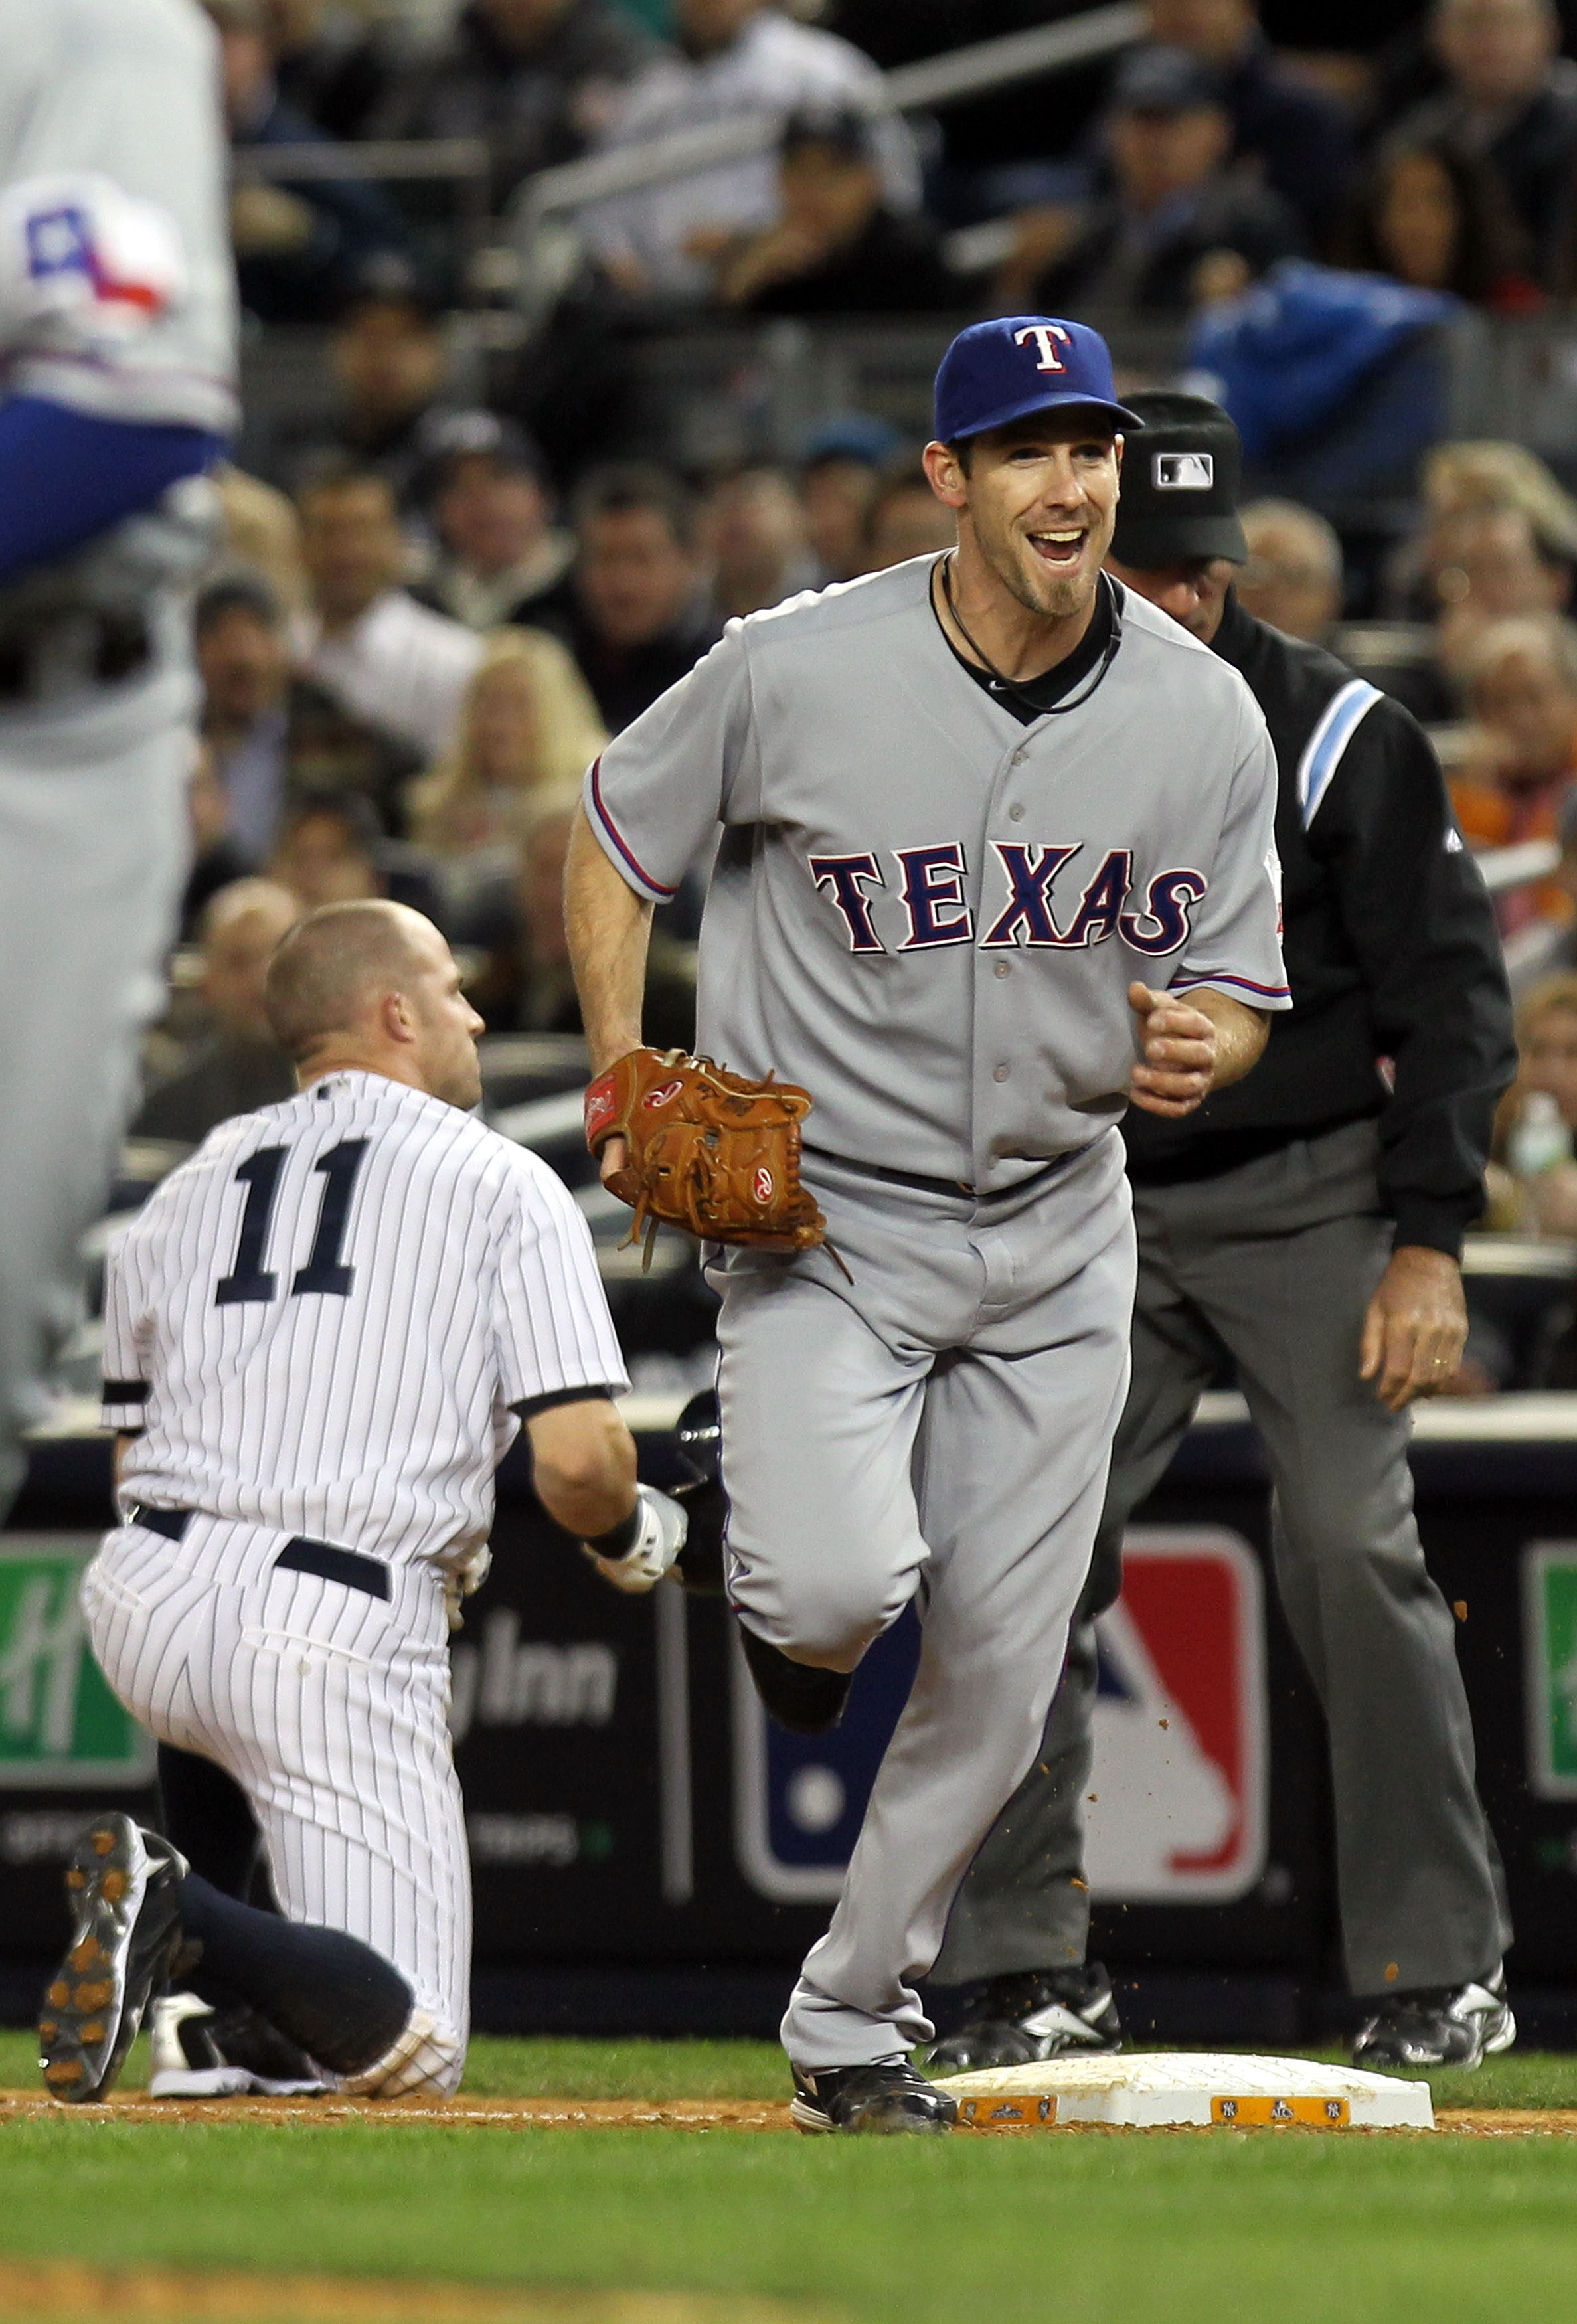 NEW YORK - OCTOBER 18:  Cliff Lee #33 of the Texas Rangers reacts after he forced out Brett Gardner #11 of the New York Yankees at first base in the bottom of the third inning of Game Three of the ALCS during the 2010 MLB Playoffs at Yankee Stadium on Oct